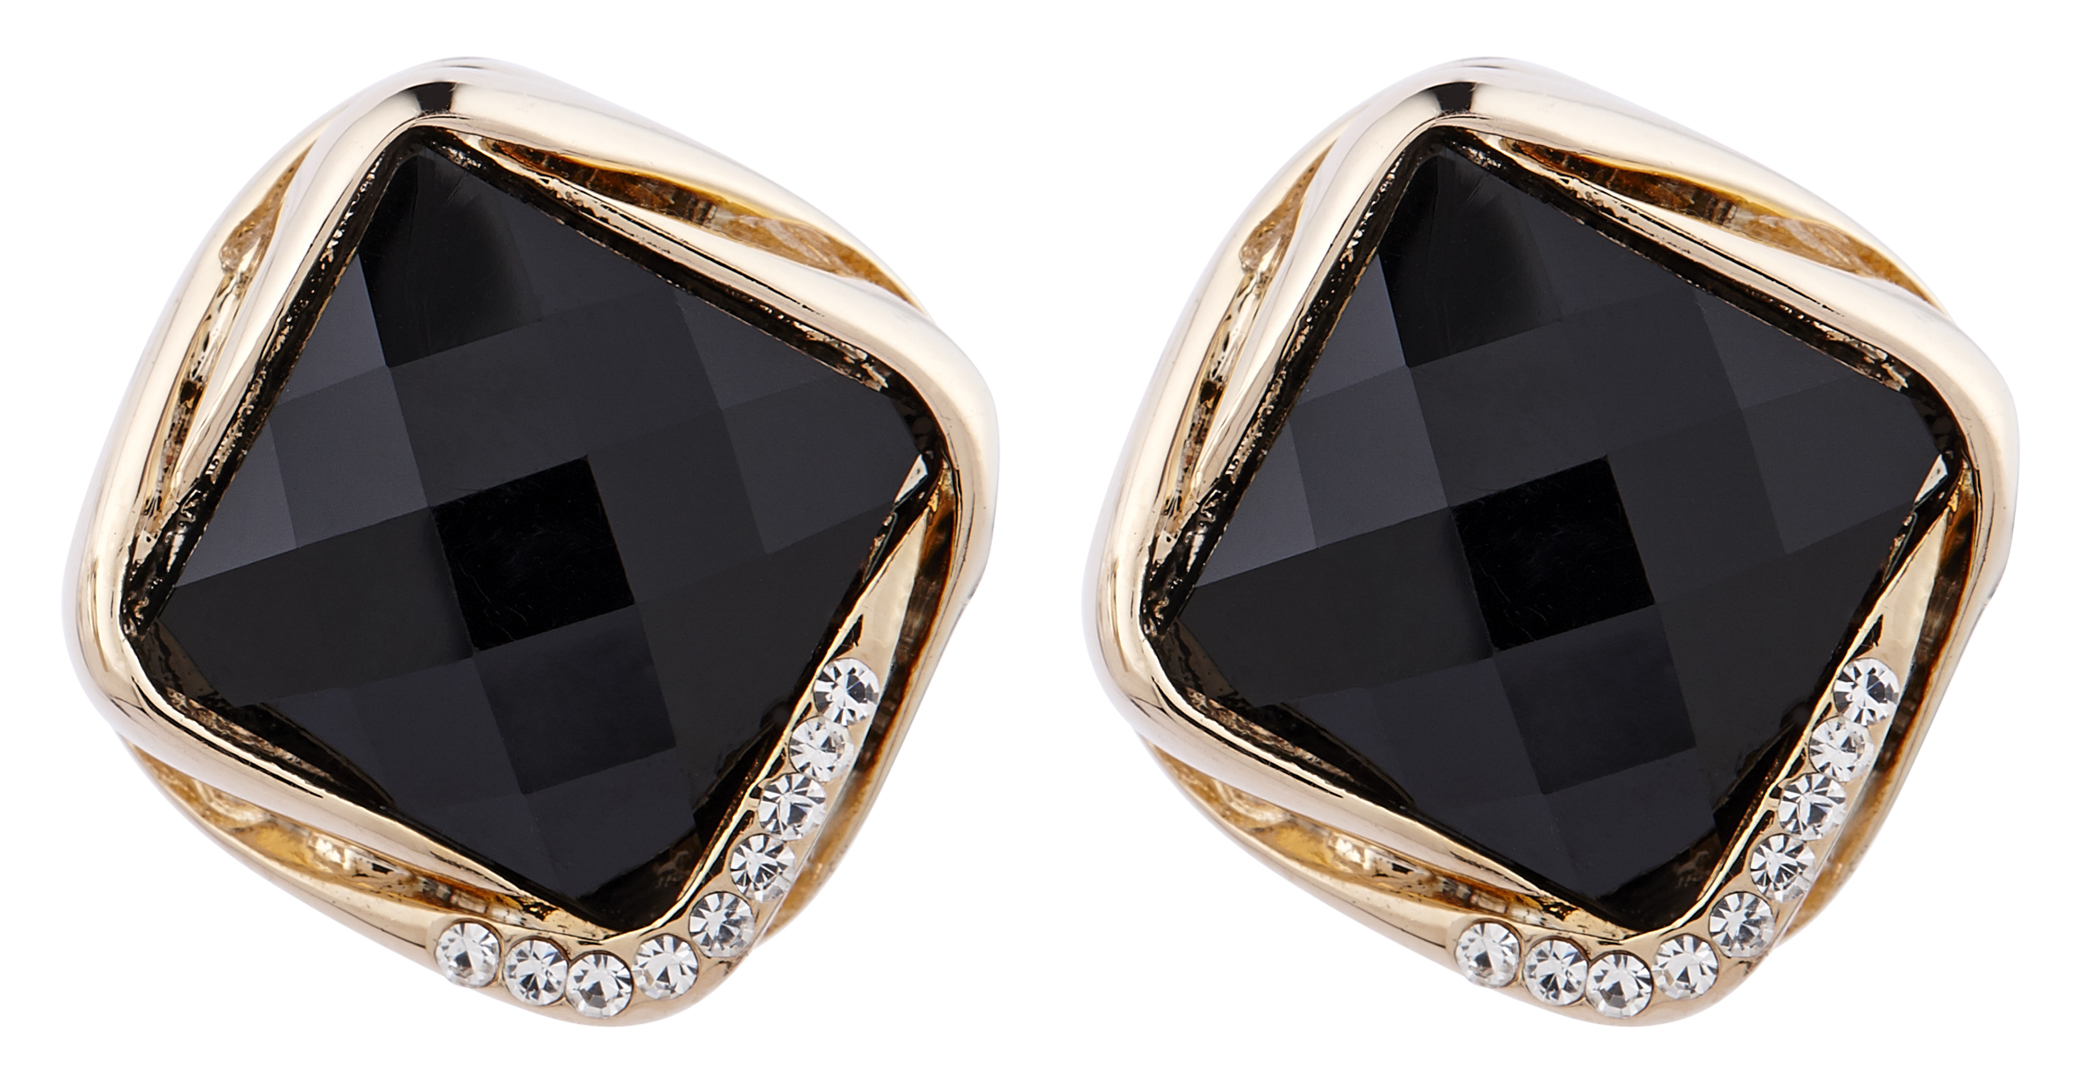 Clip On Earrings - Betty B - gold stud earring with a black stone and crystals